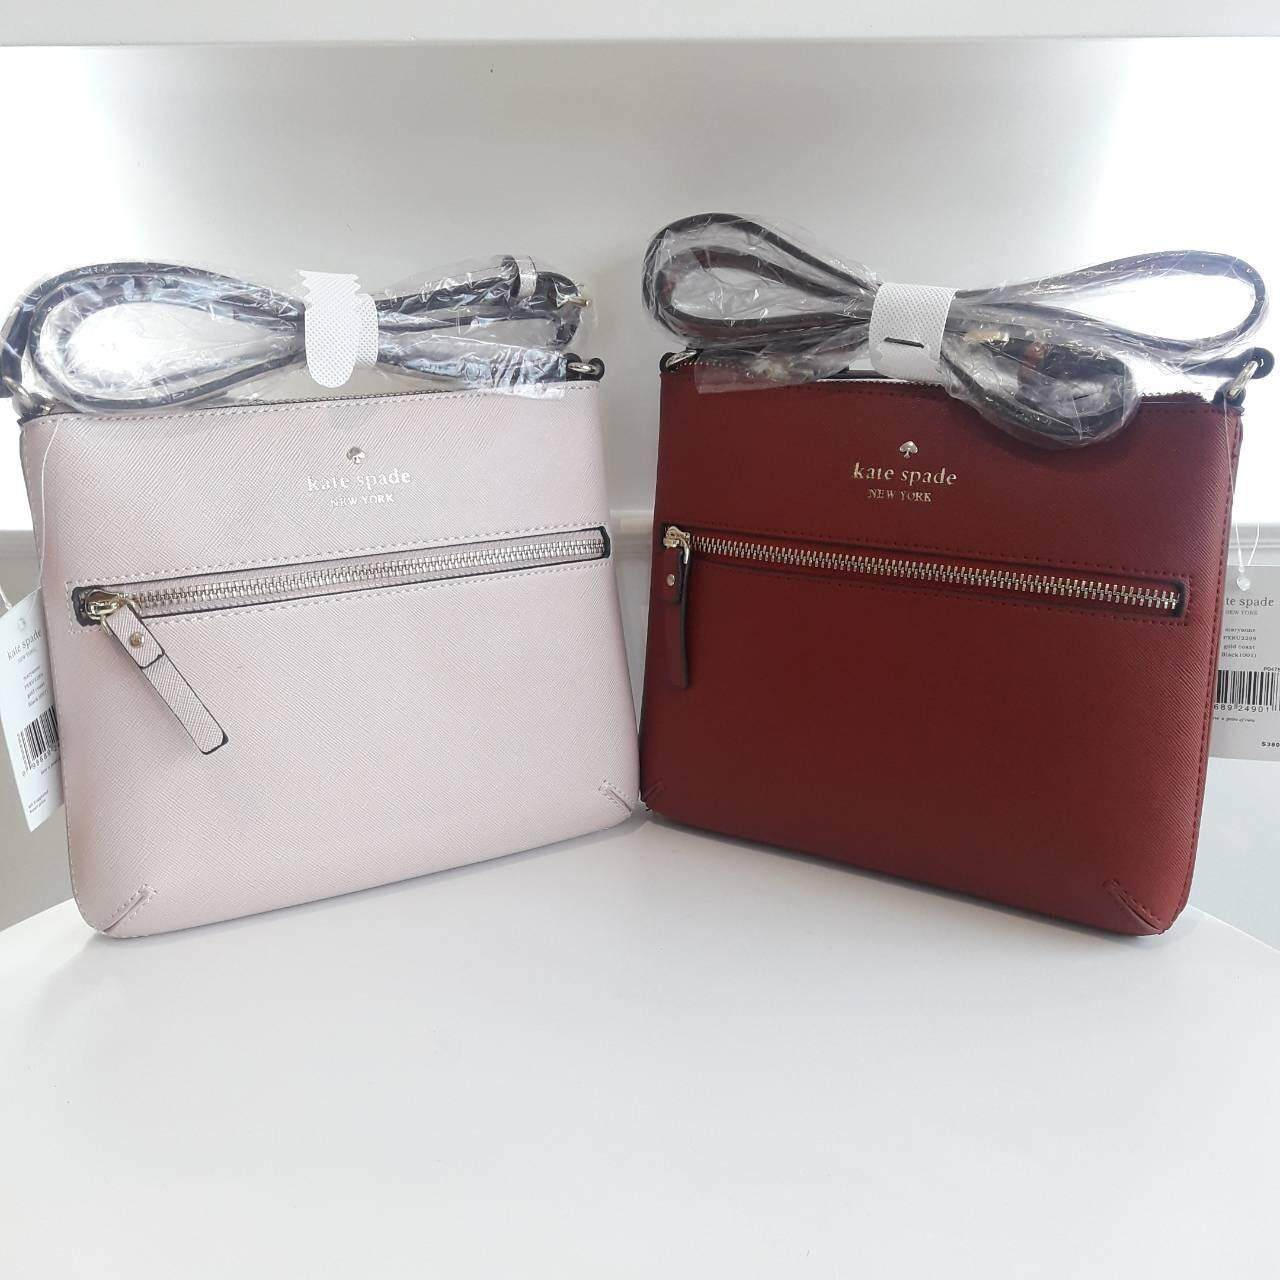 New Arrival Kate spade new york saffiano crossbody bag